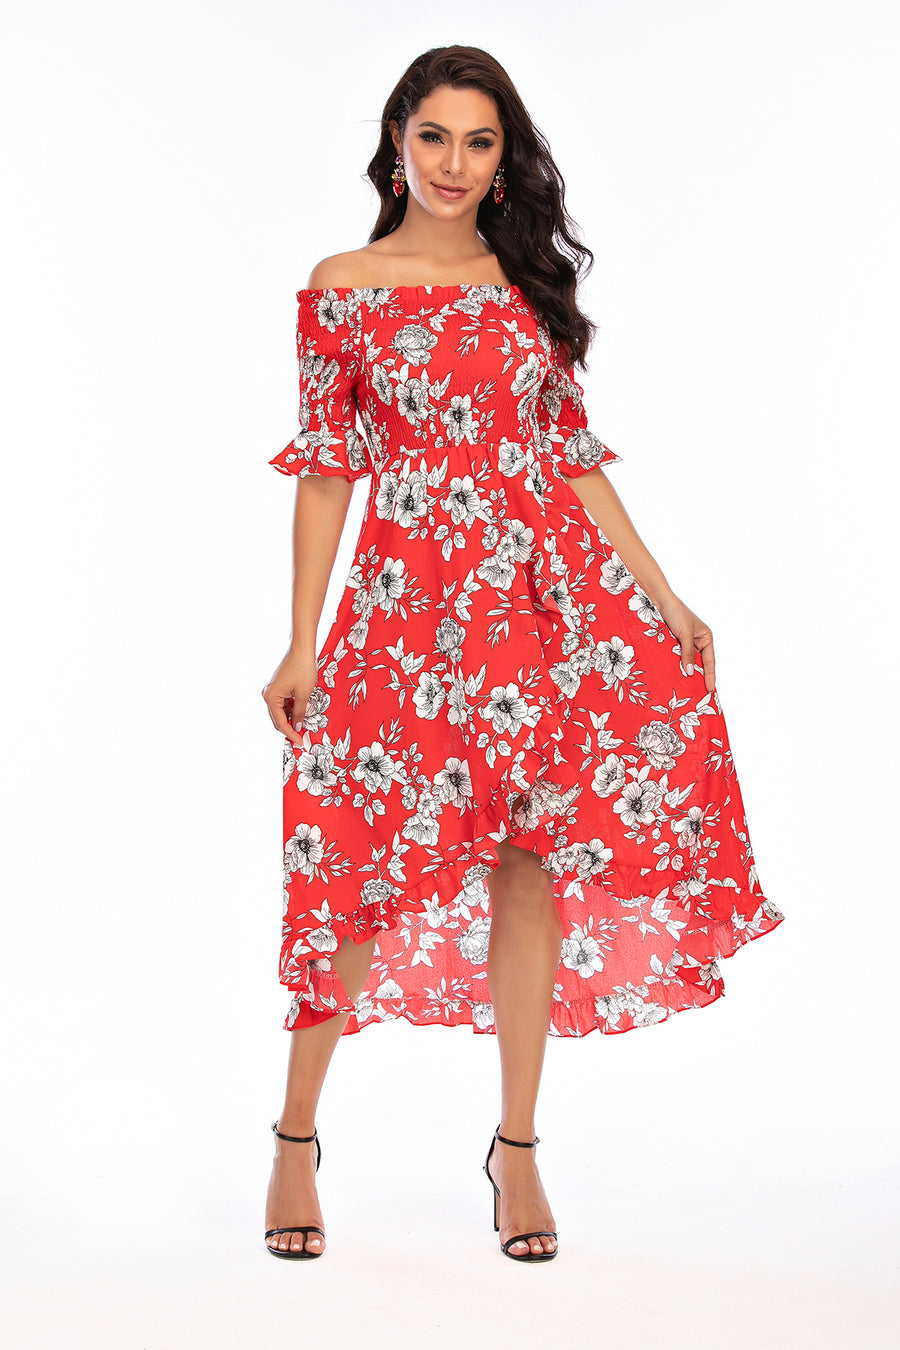 Mantra Pakistan Off shoulder Red Floral Dress | Western Wear